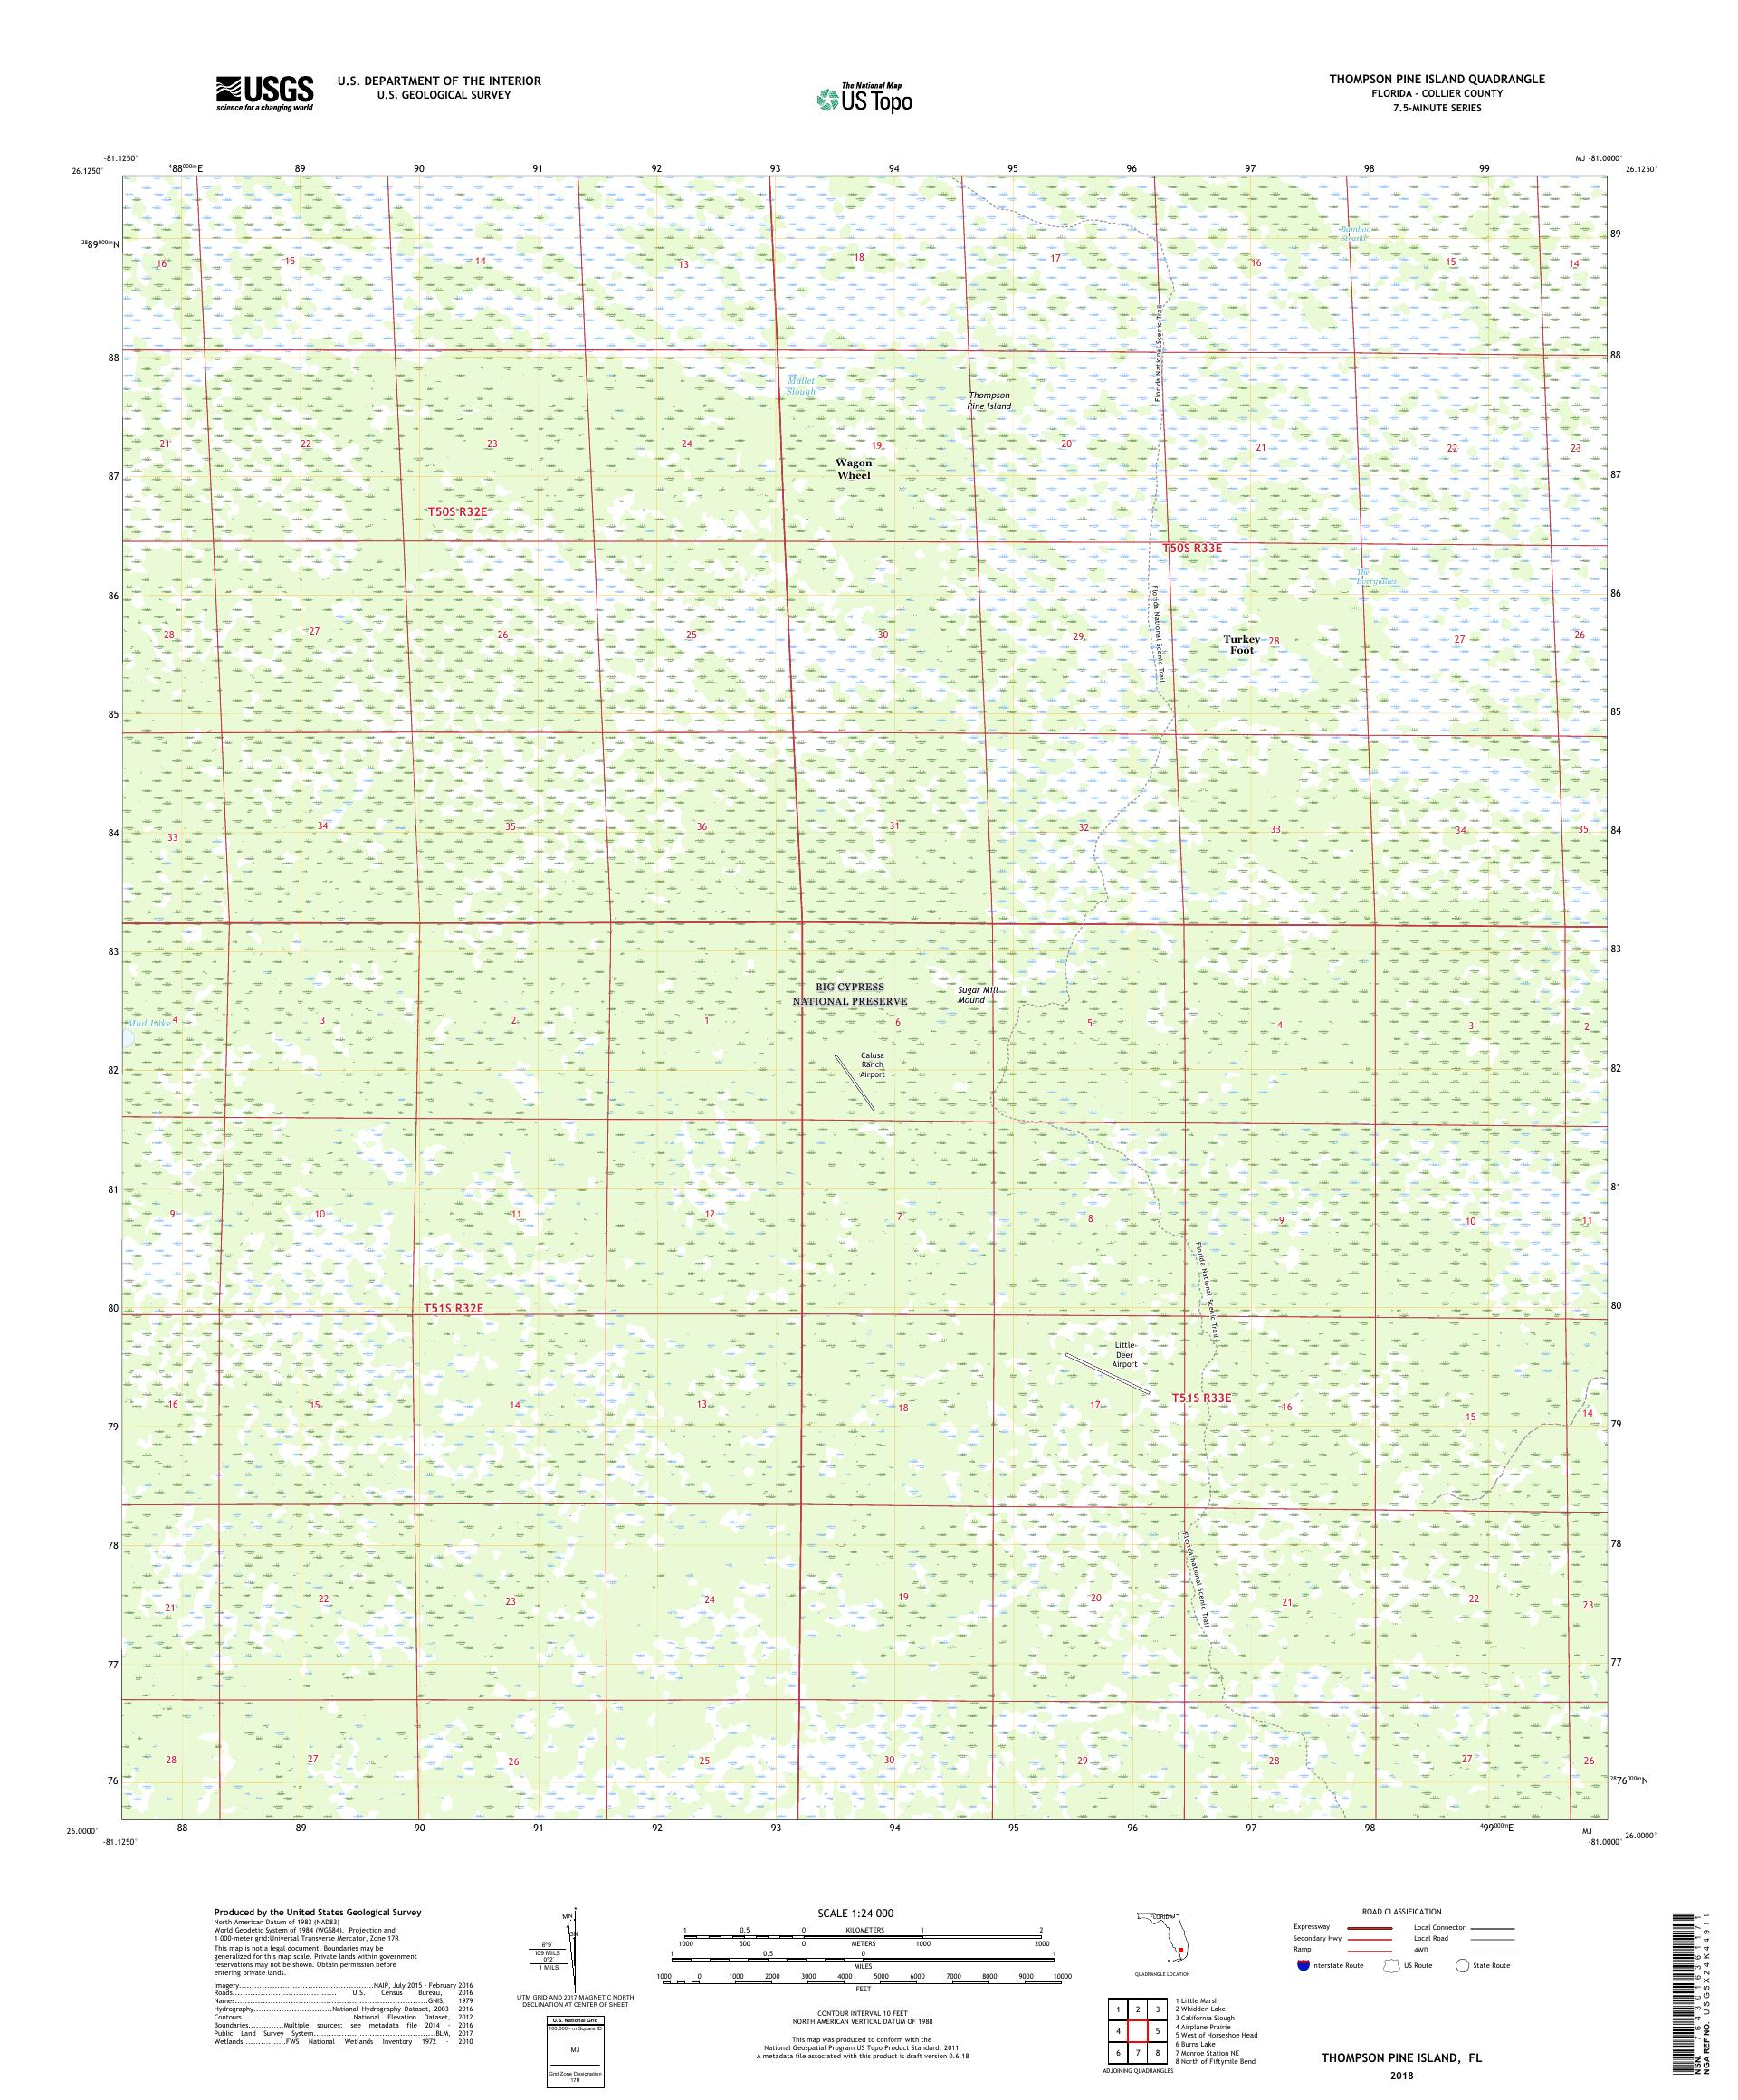 MyTopo Thompson Pine Island, Florida USGS Quad Topo Map